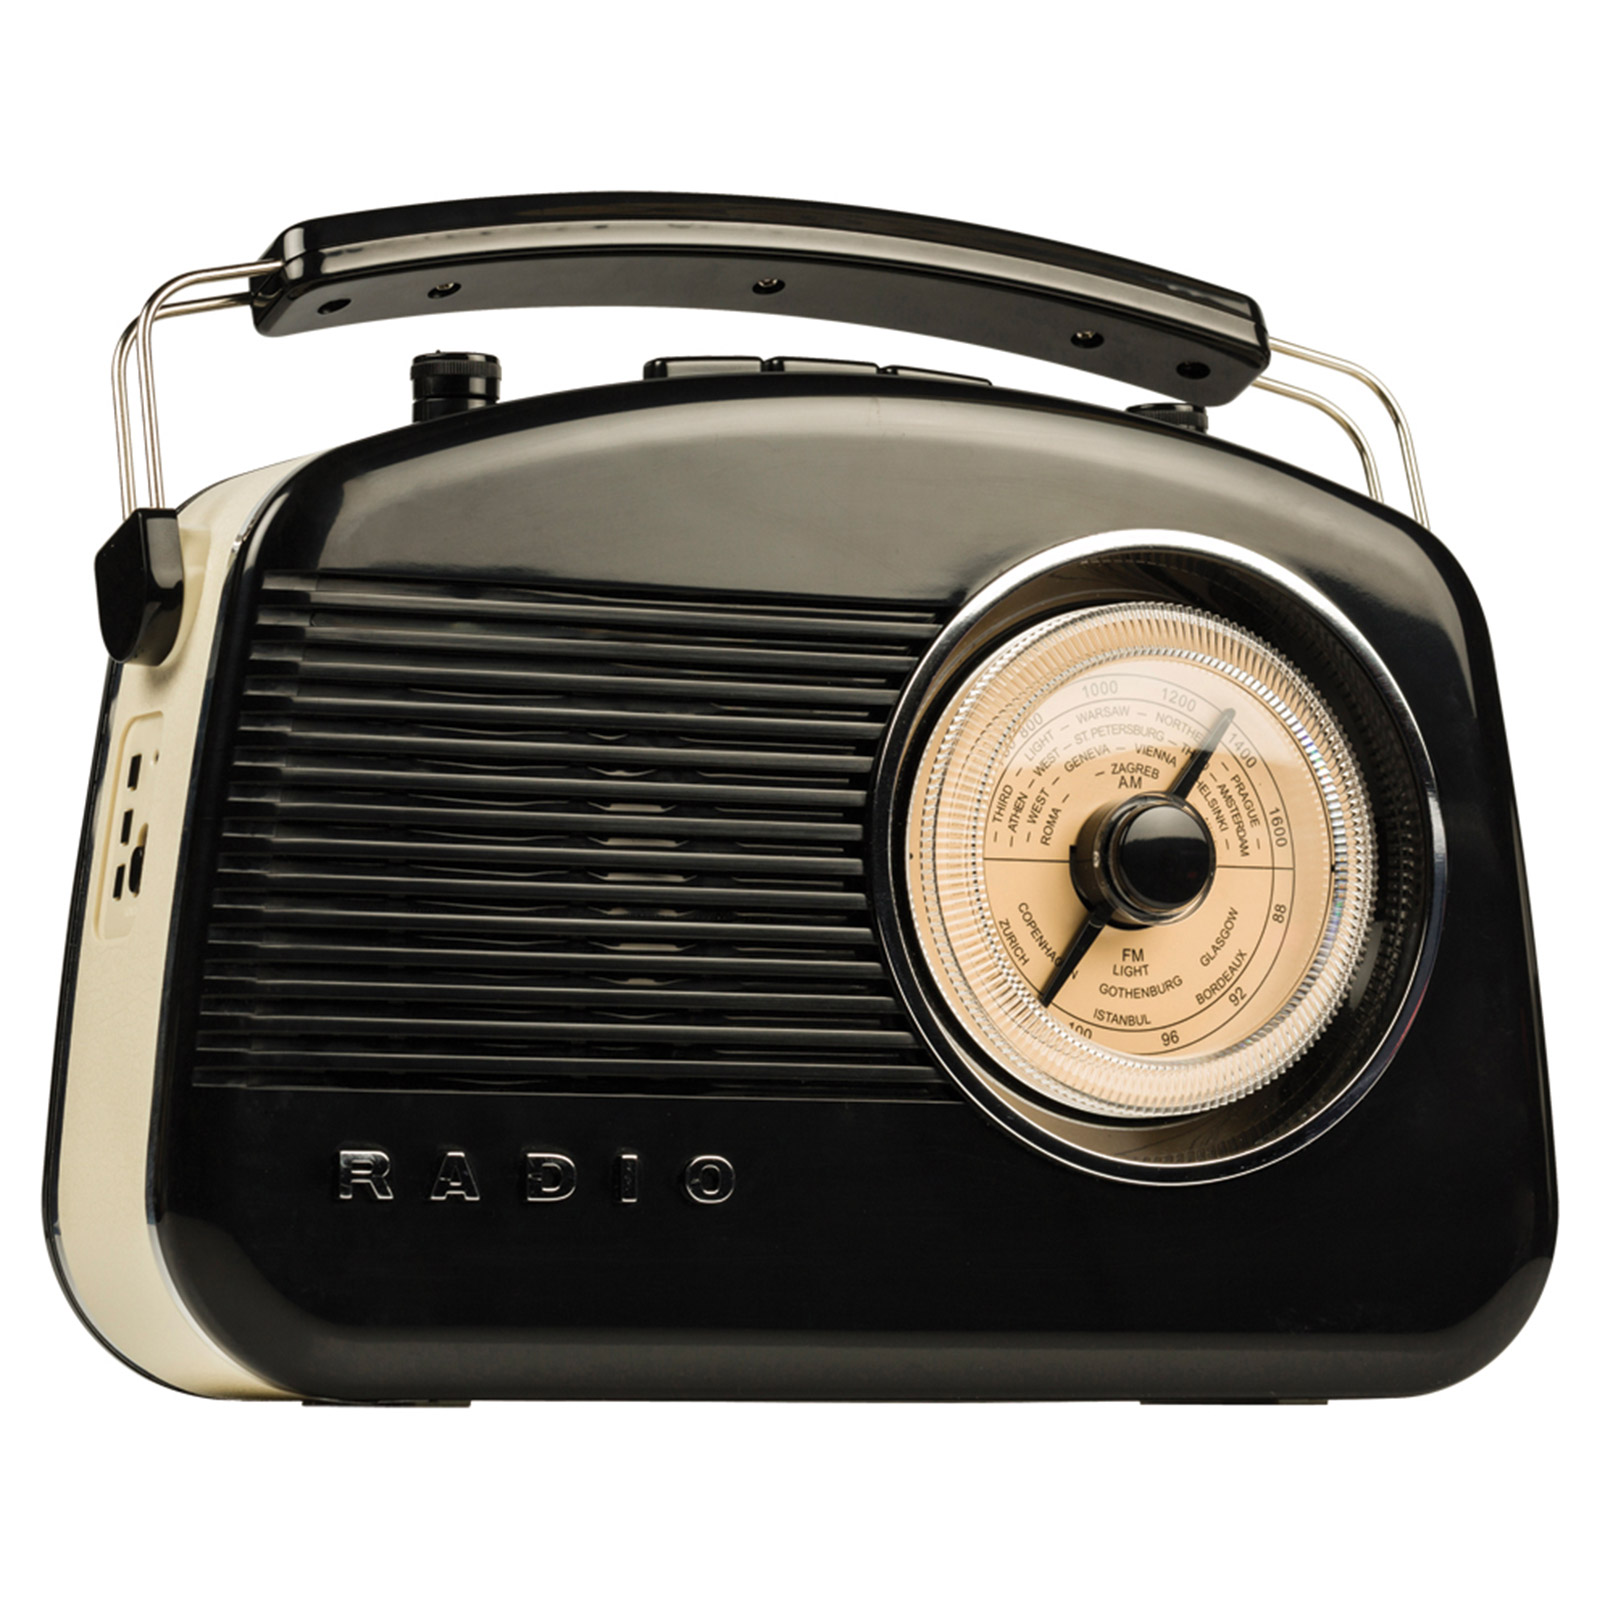 konig new retro vintage am fm portable black radio with bluetooth hav tr800bl ebay. Black Bedroom Furniture Sets. Home Design Ideas